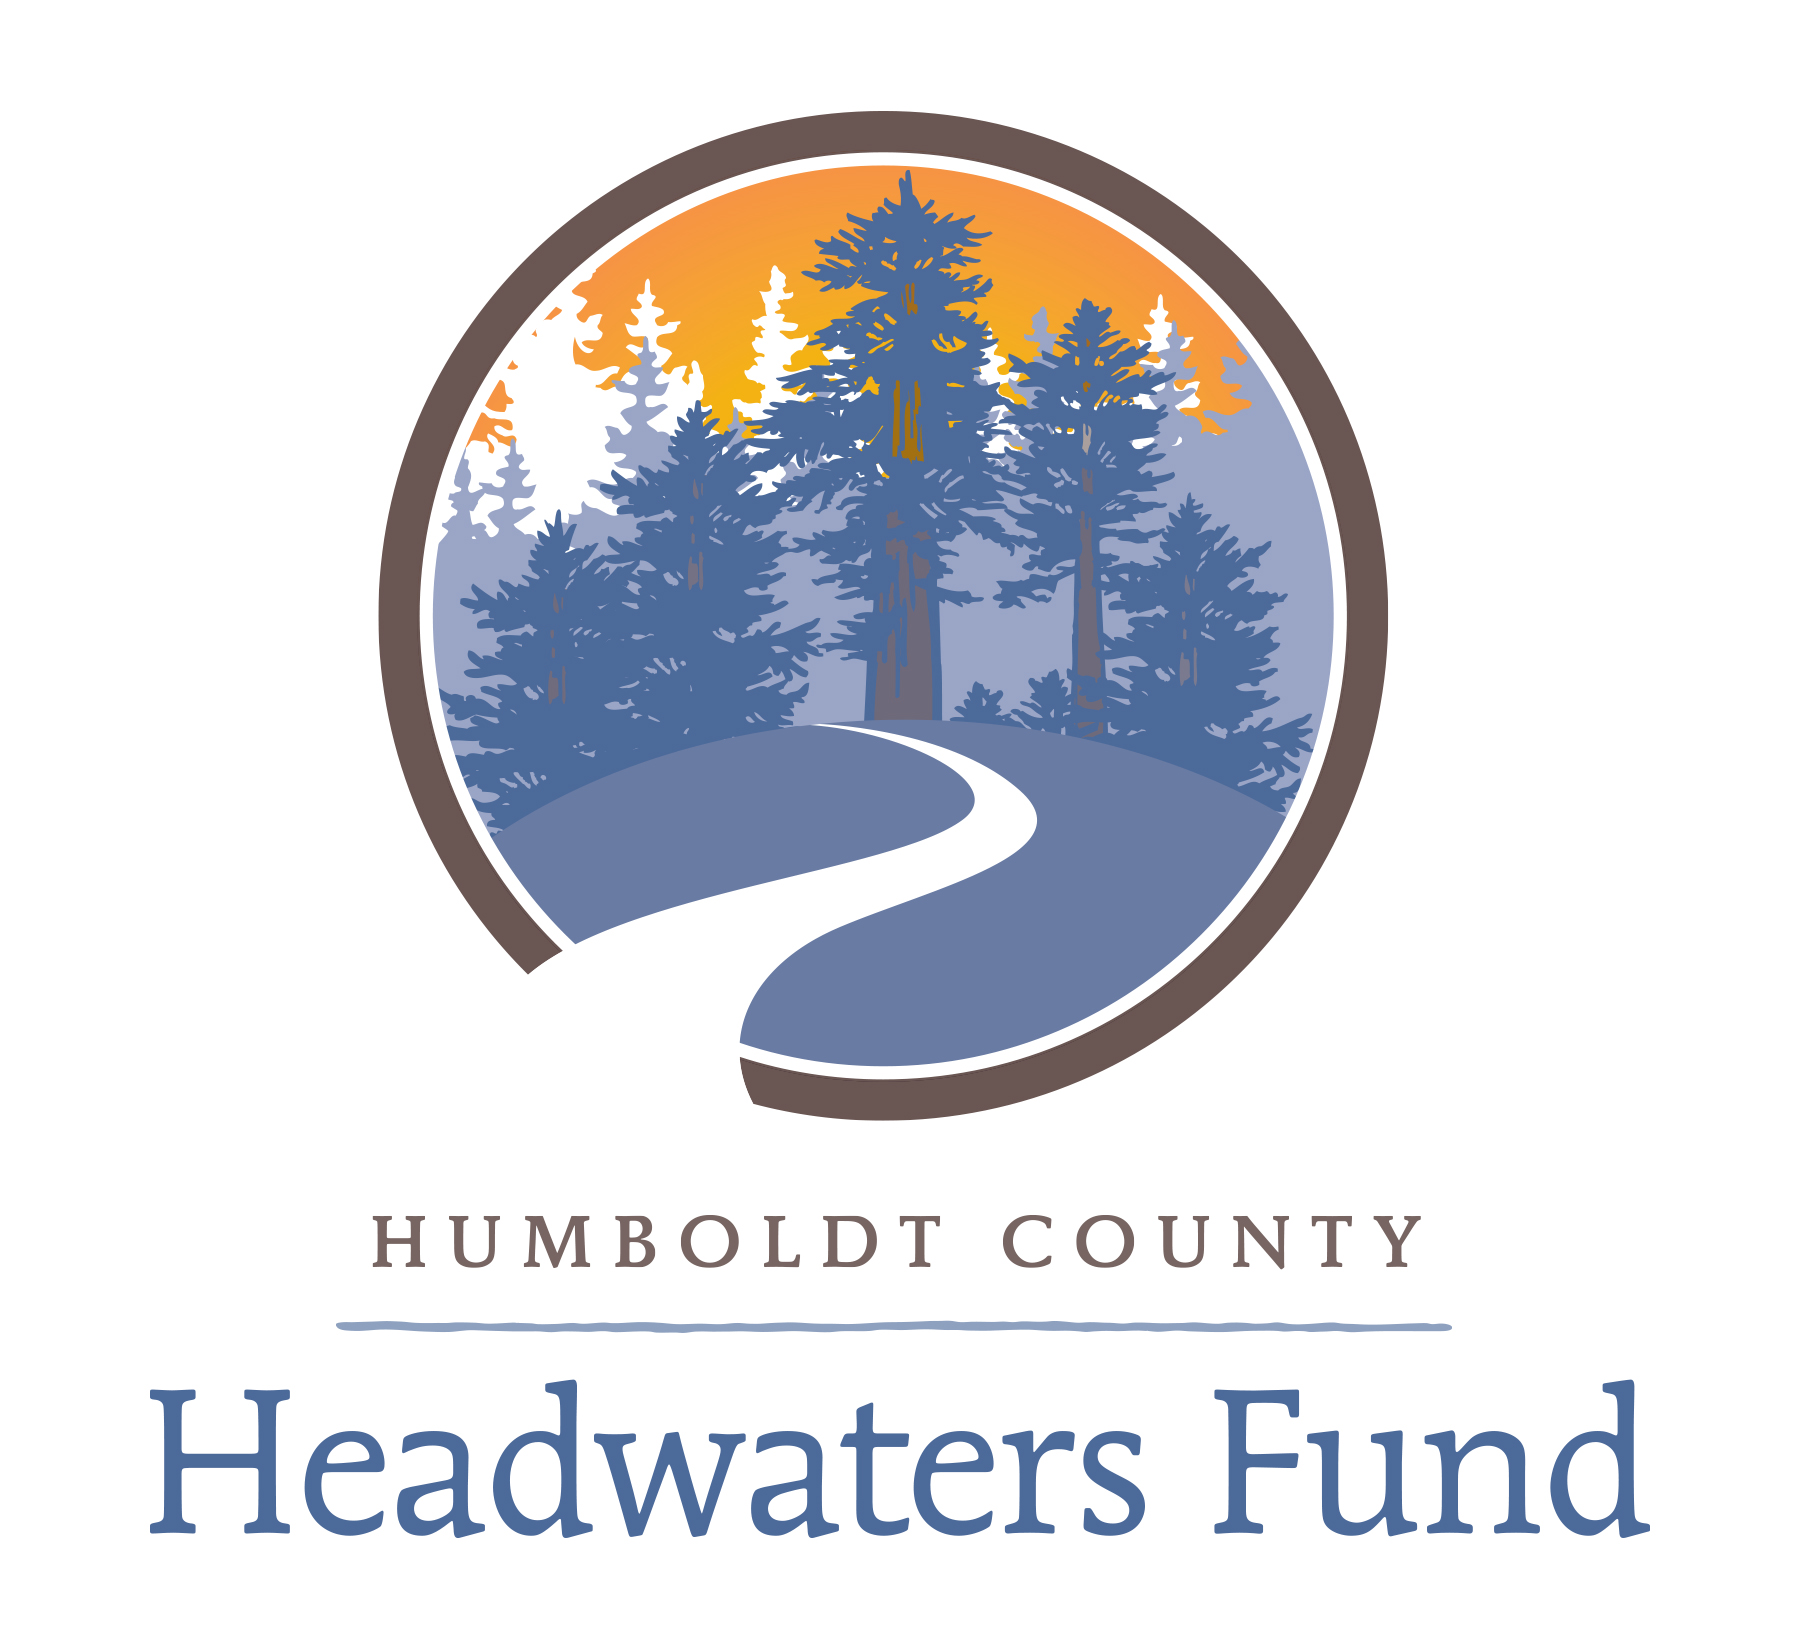 Humboldt County Headwaters Fund Logo